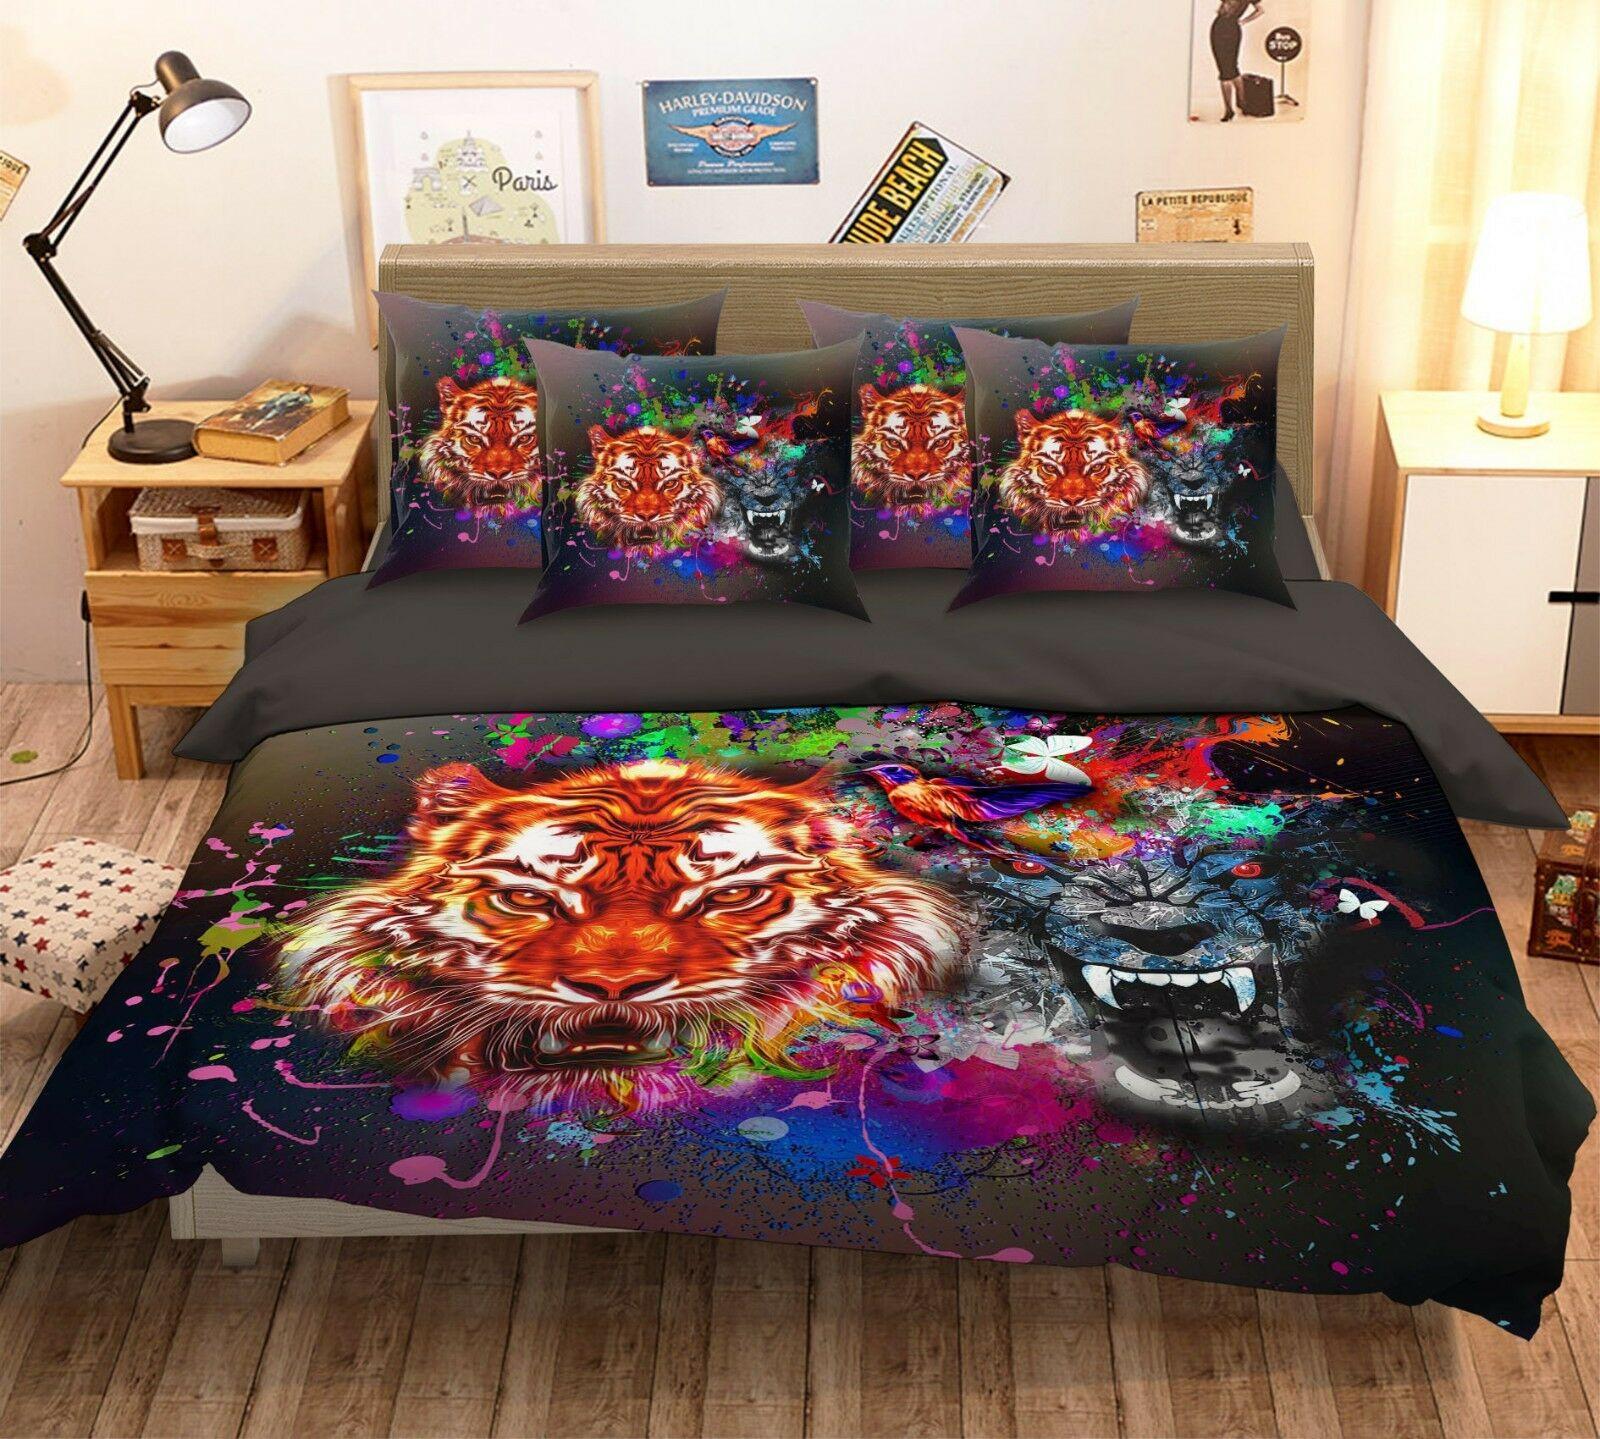 3D Leopard Tiger CKunstoon 6 Bett Pillowcases Quilt Duvet Startseite Set Single Königin US